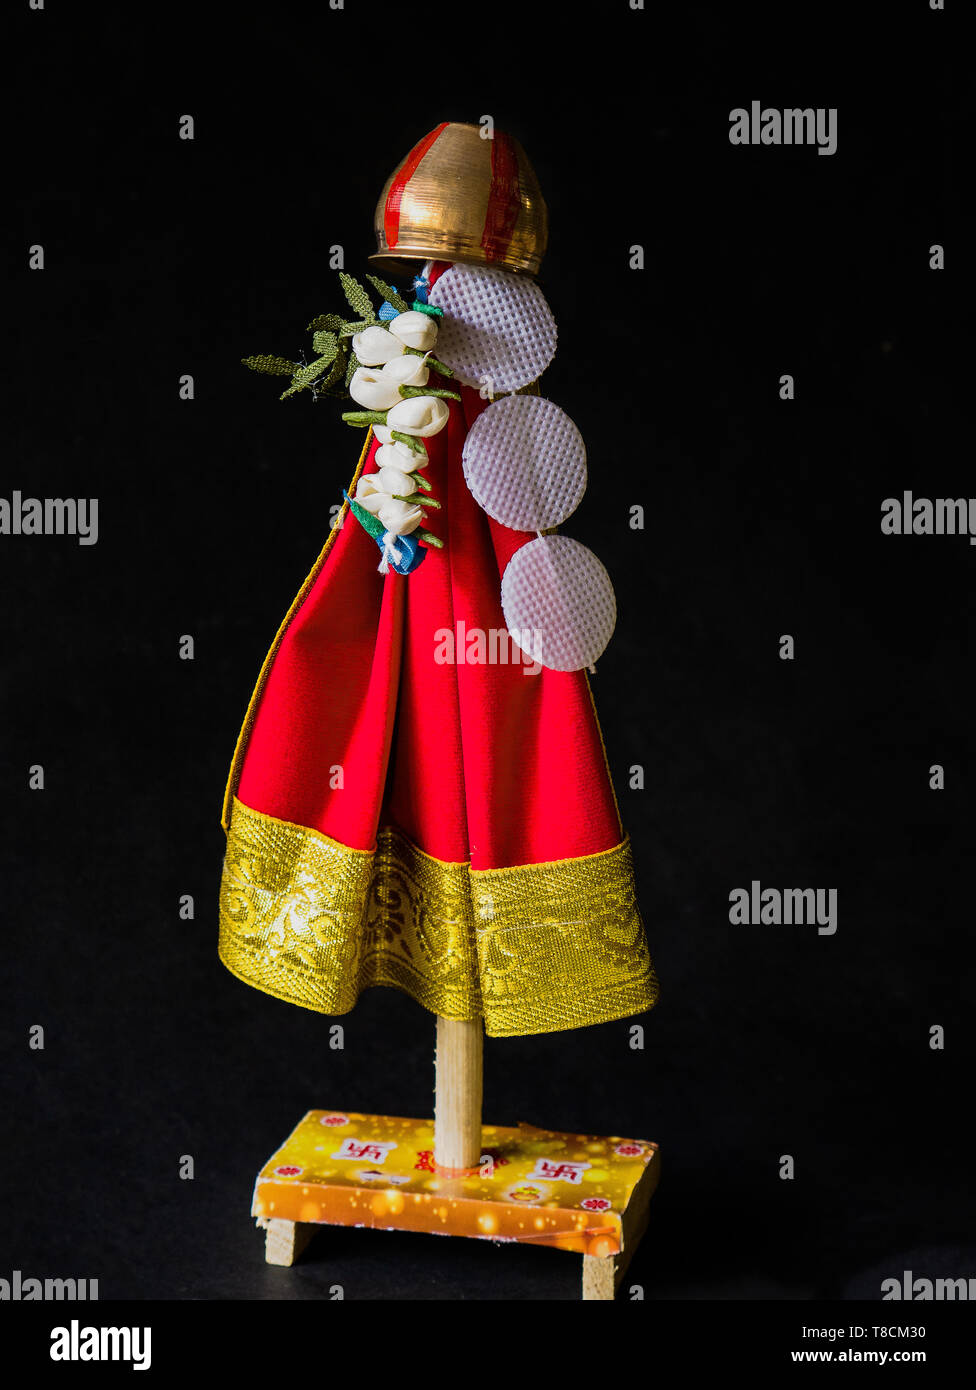 6-Apr-2019-Gudi Padwa a Cosept Gudhi a flag, garlanded with flowers, and neem leaves, topped with upturned copper vessel Kalyan Maharashtra INDIA - Stock Image